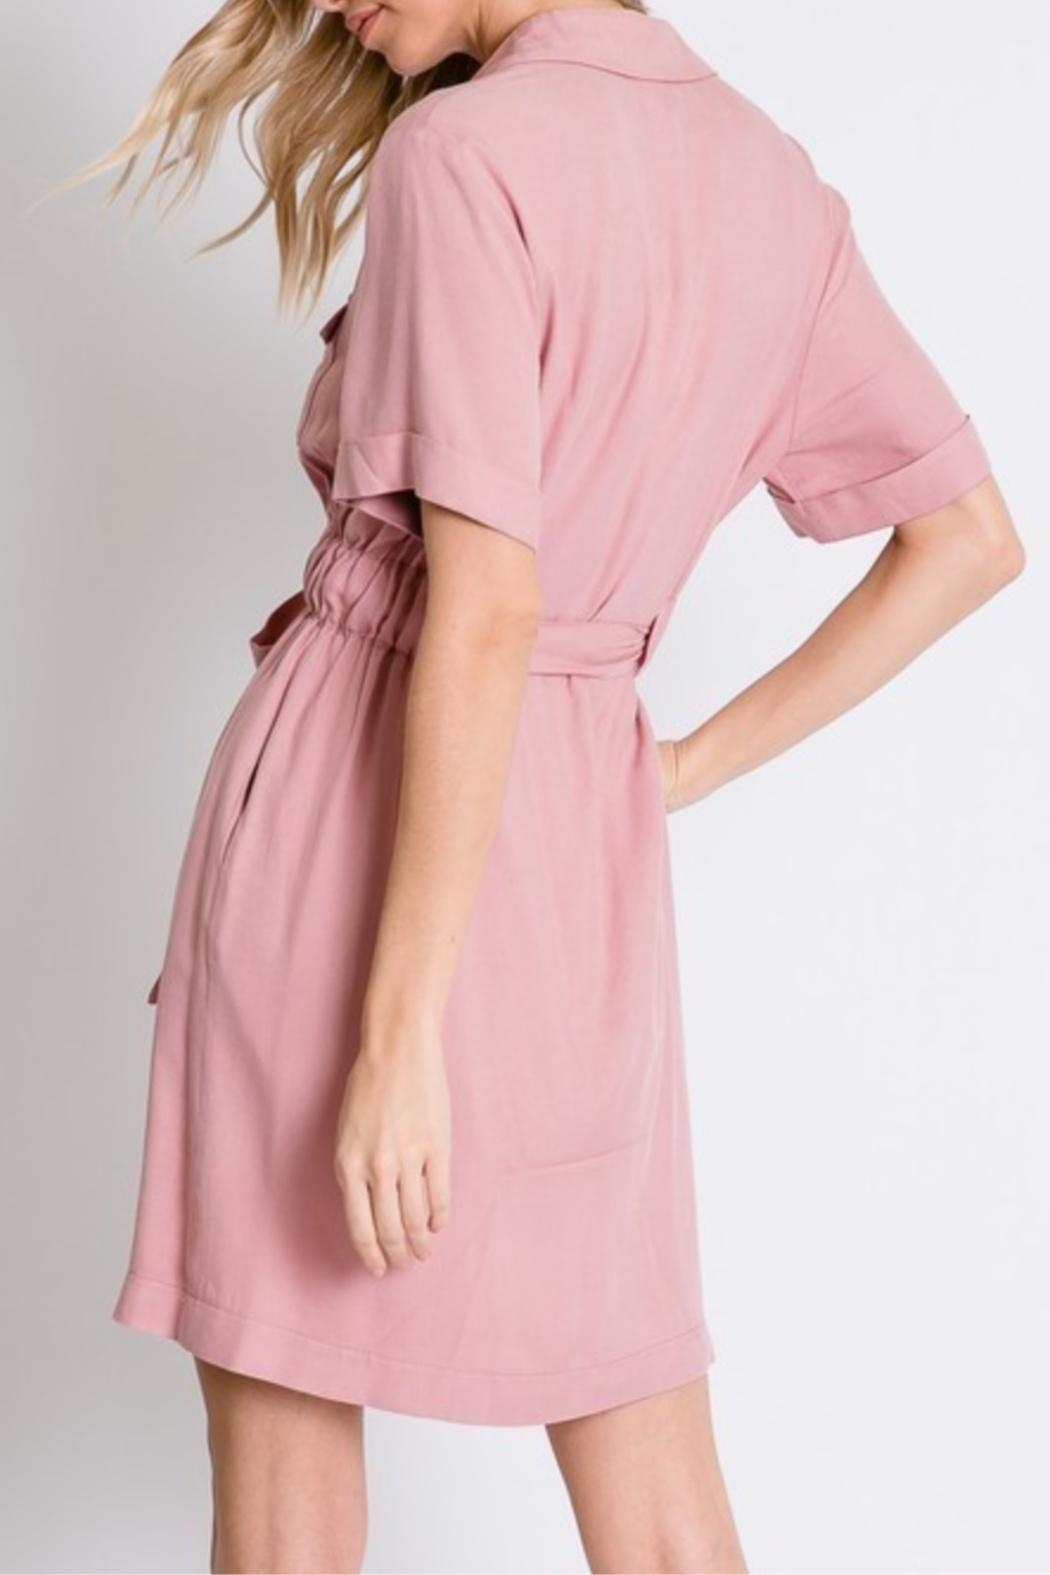 Davi & Dani Button Down Shirt-Dress - Back Cropped Image